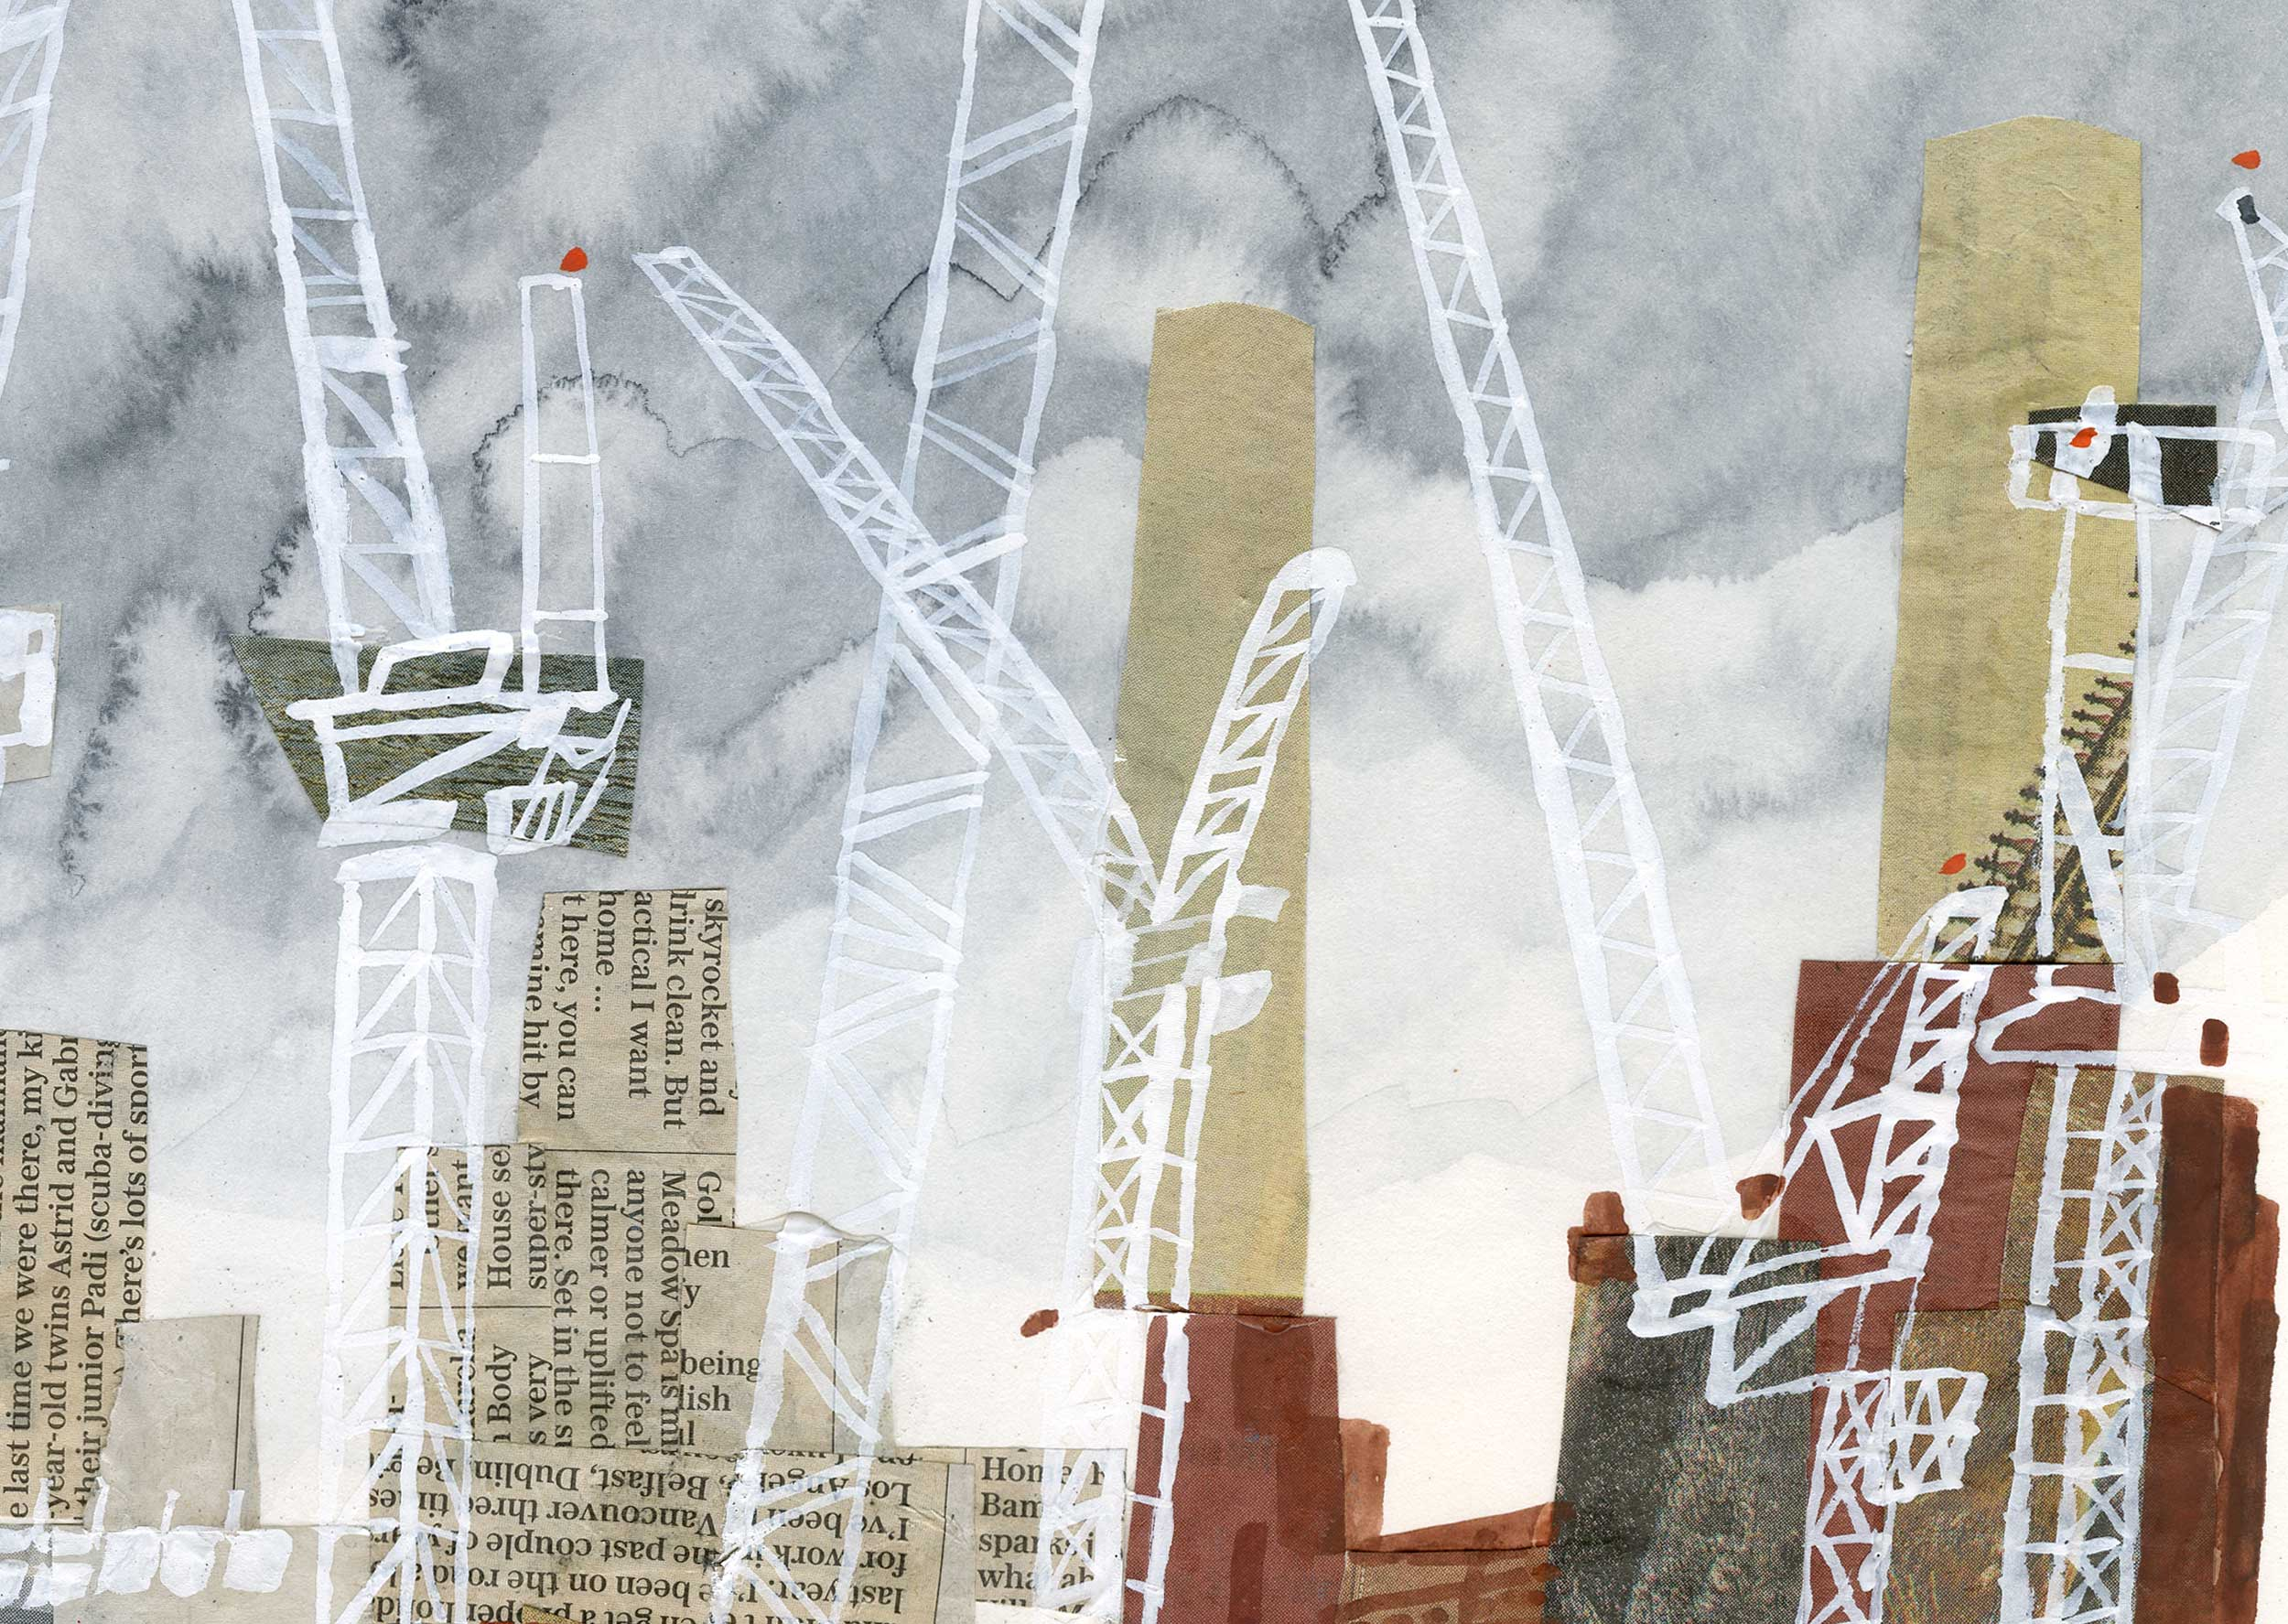 Battersea Power Station by James Oses, image 4